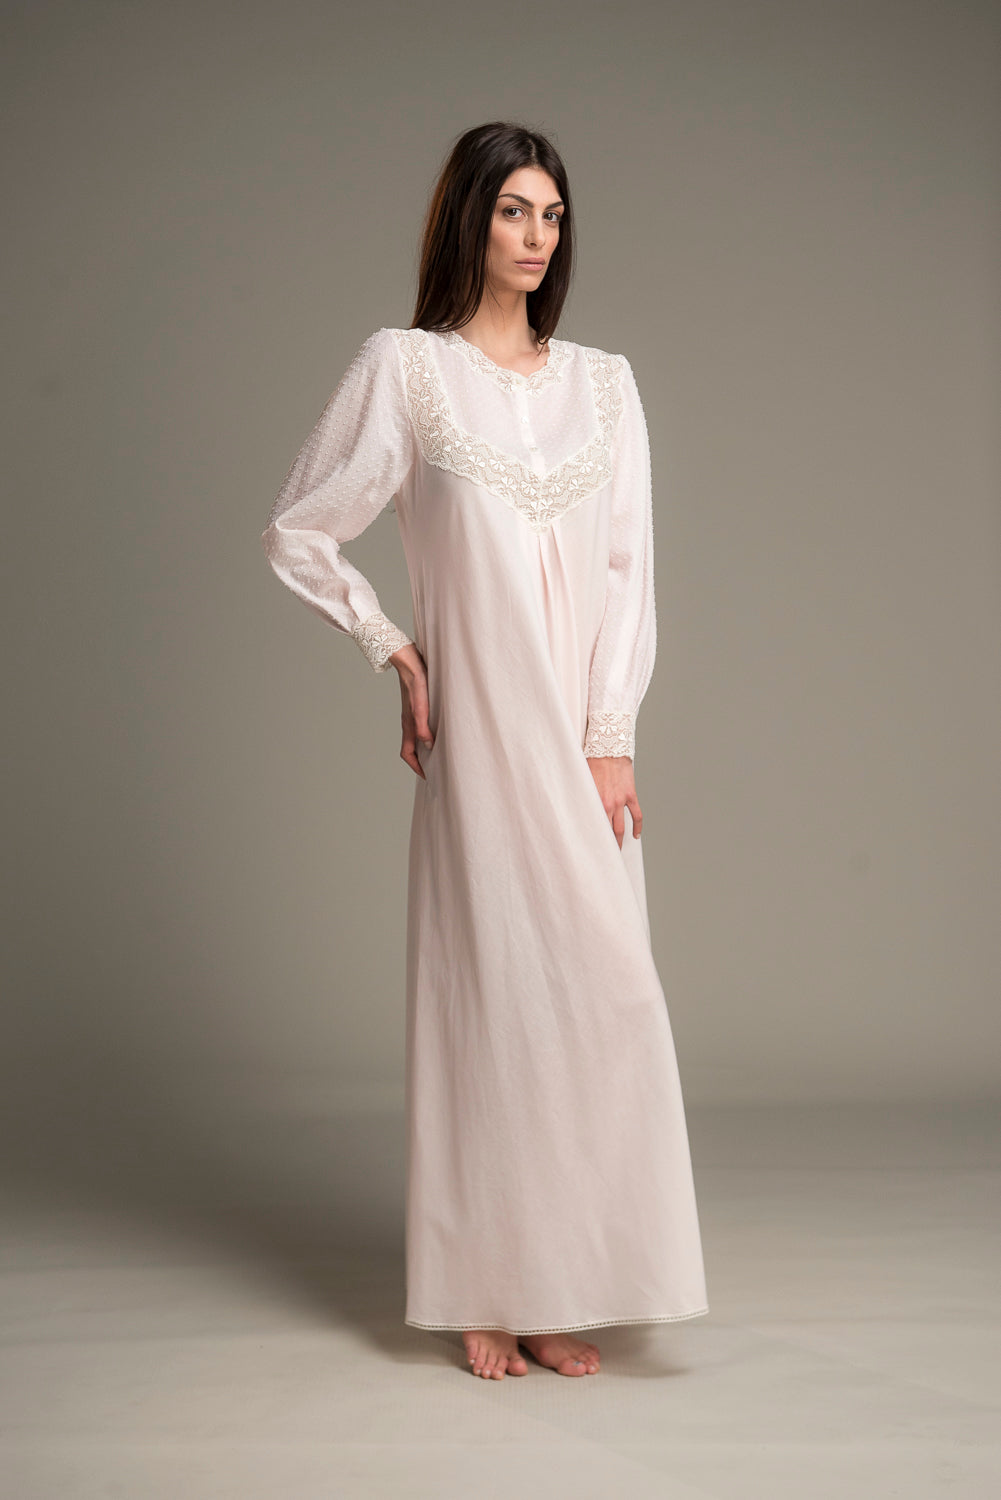 Plumetties Nightgown - Dress - italian lingerie